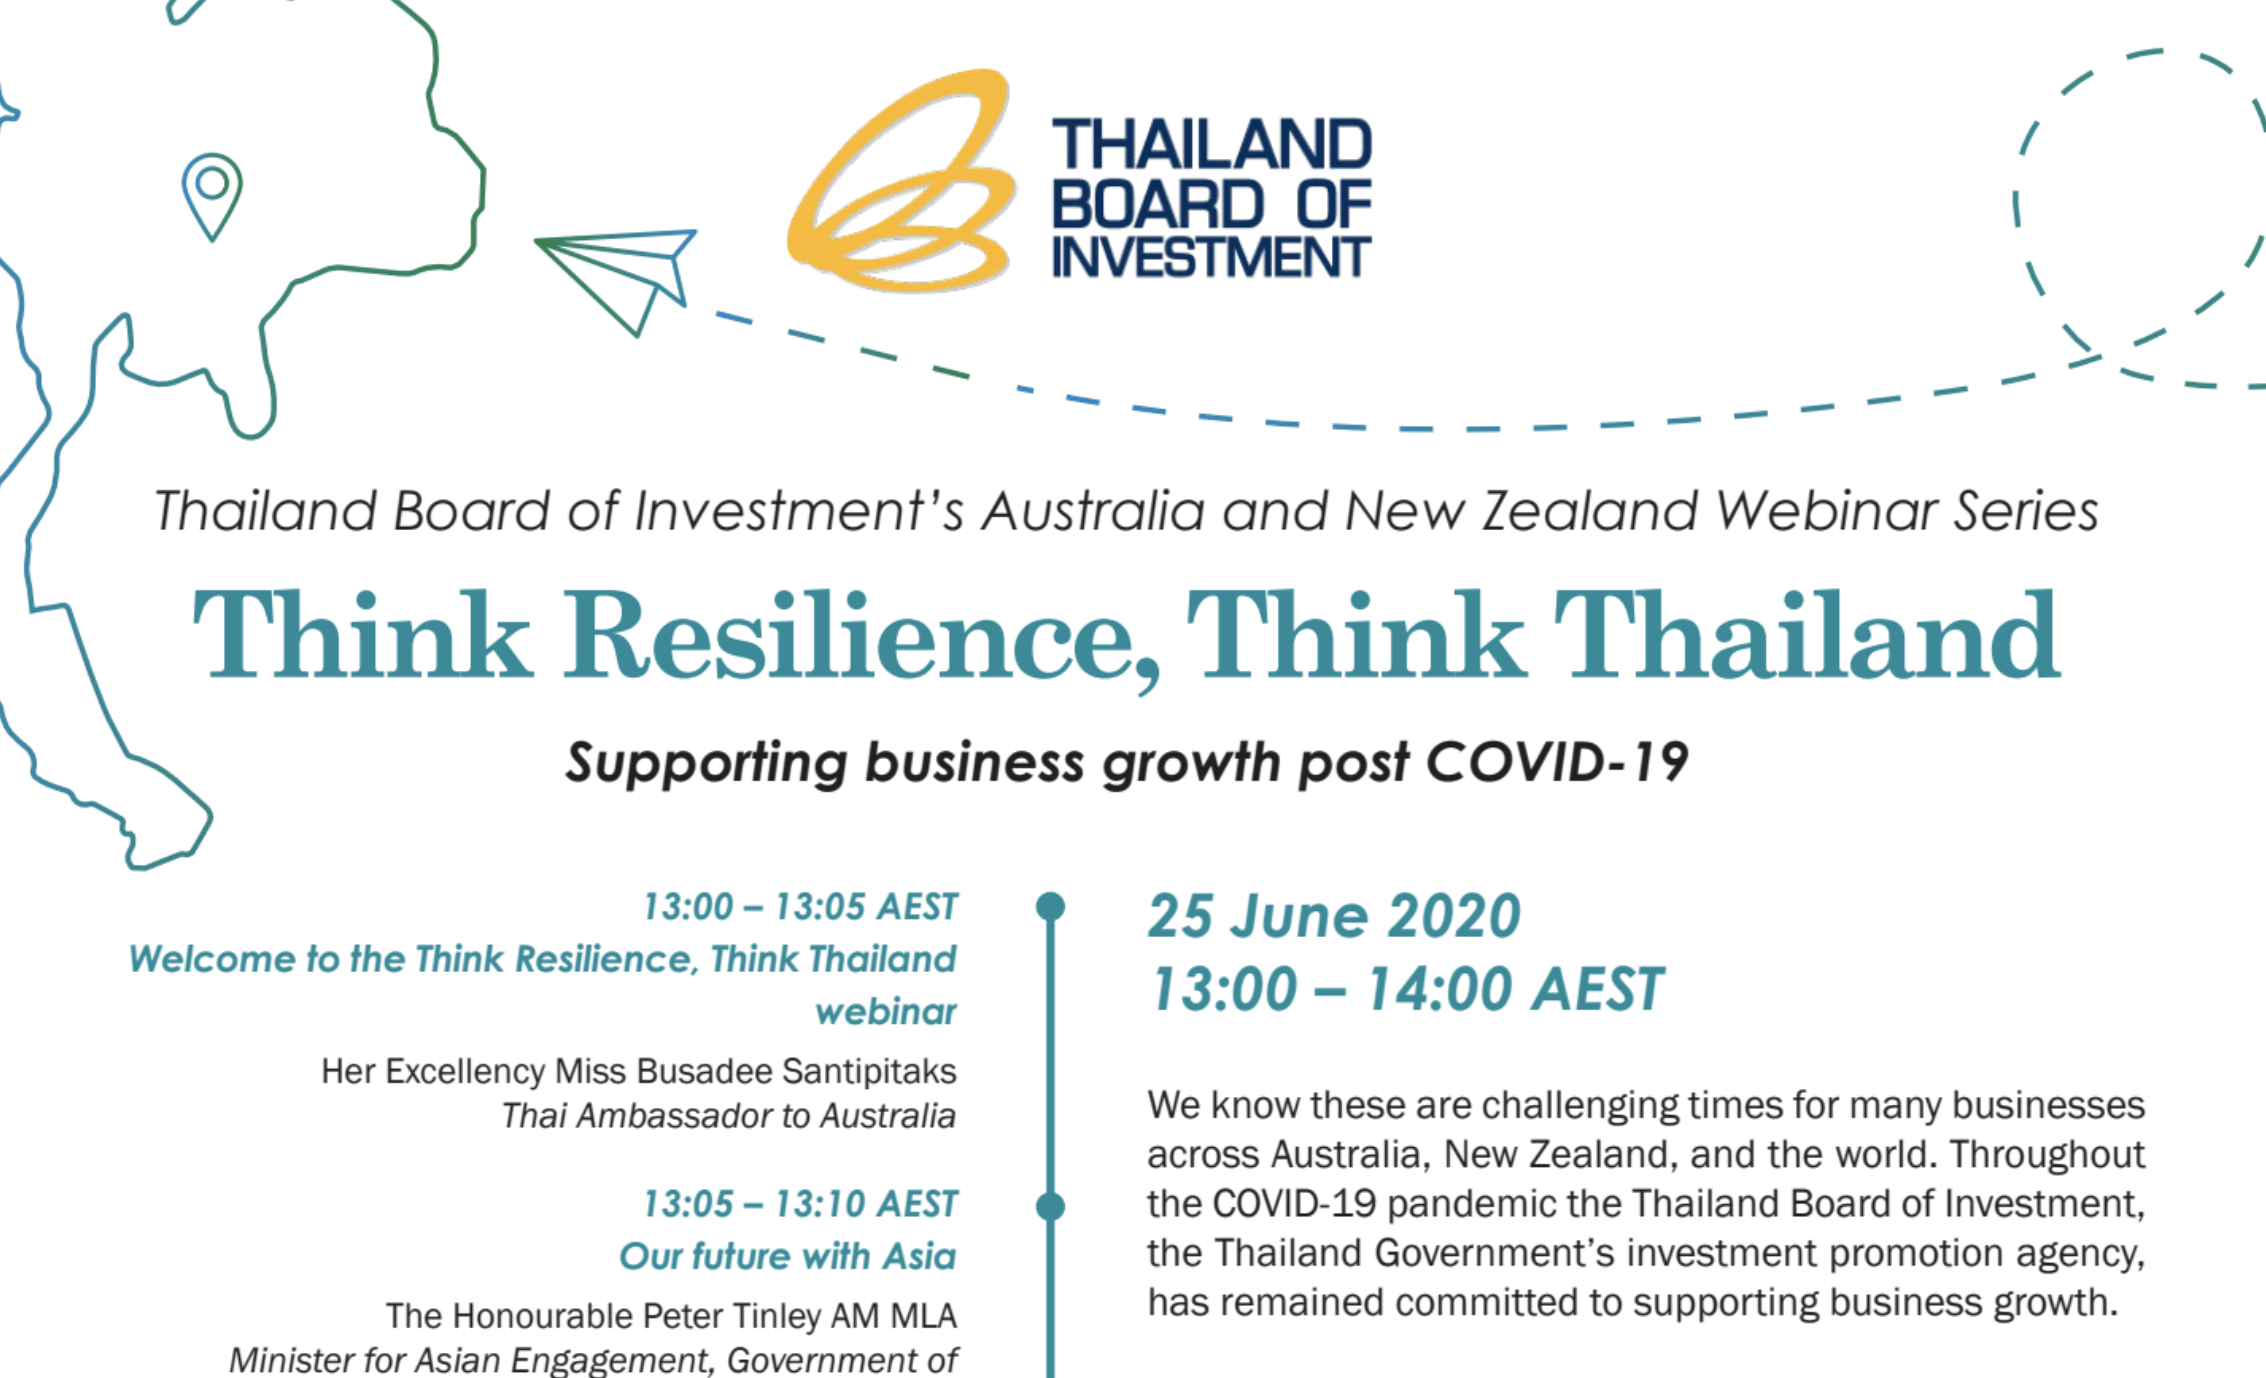 Think Resilience, Think Thailand